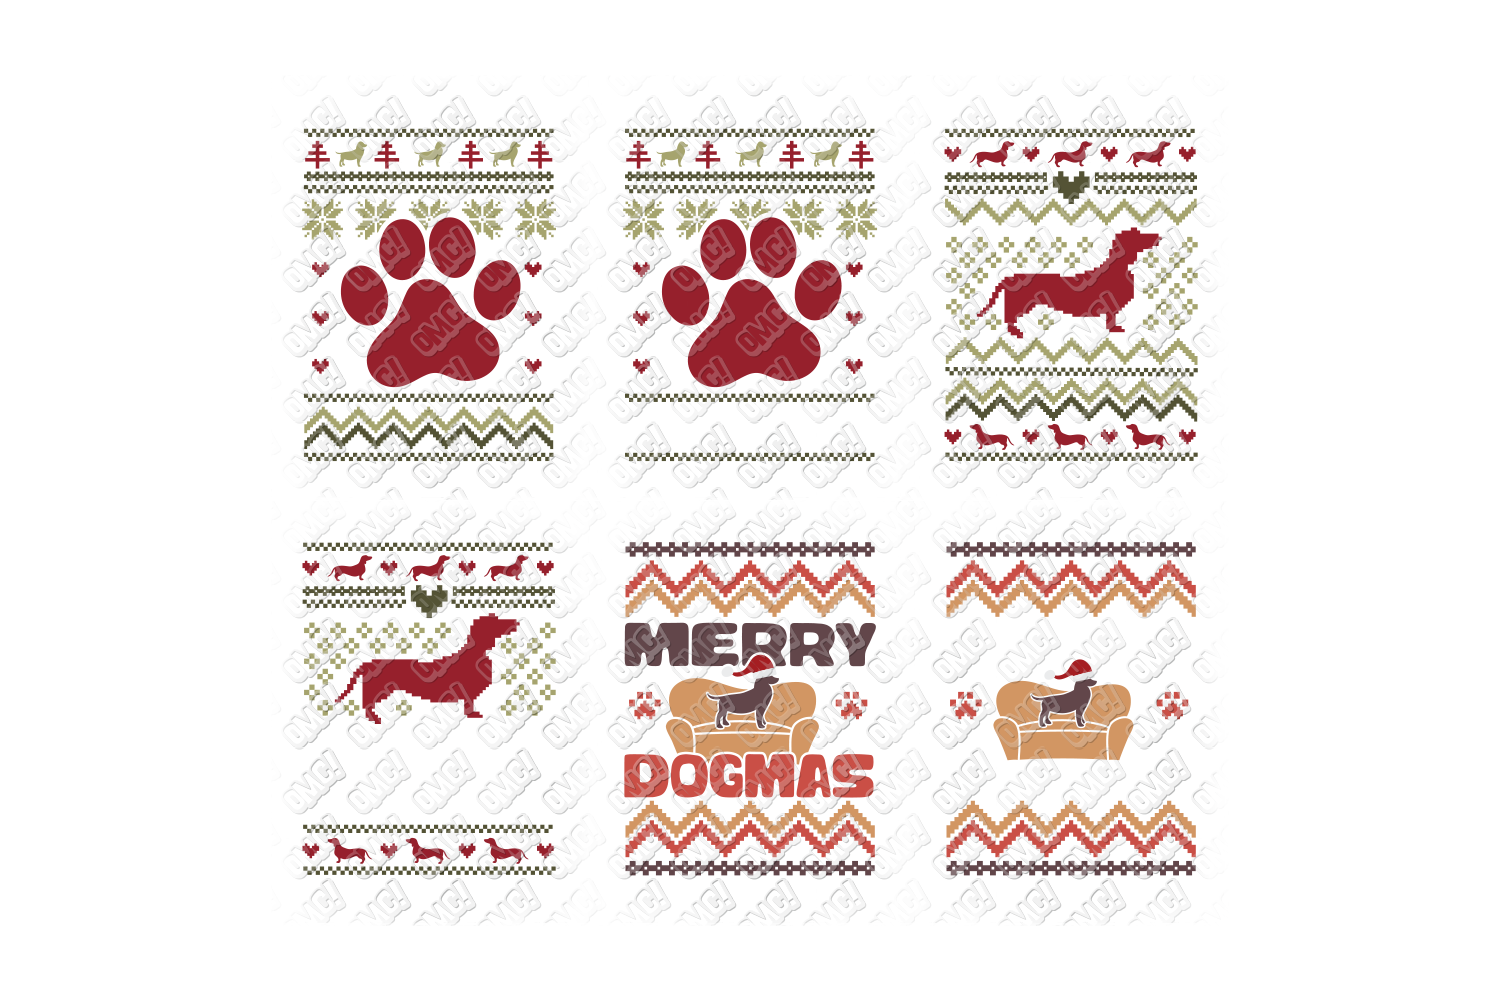 Dog Ugly Christmas SVG Template in SVG, DXF, PNG, EPS, JPG example image 3